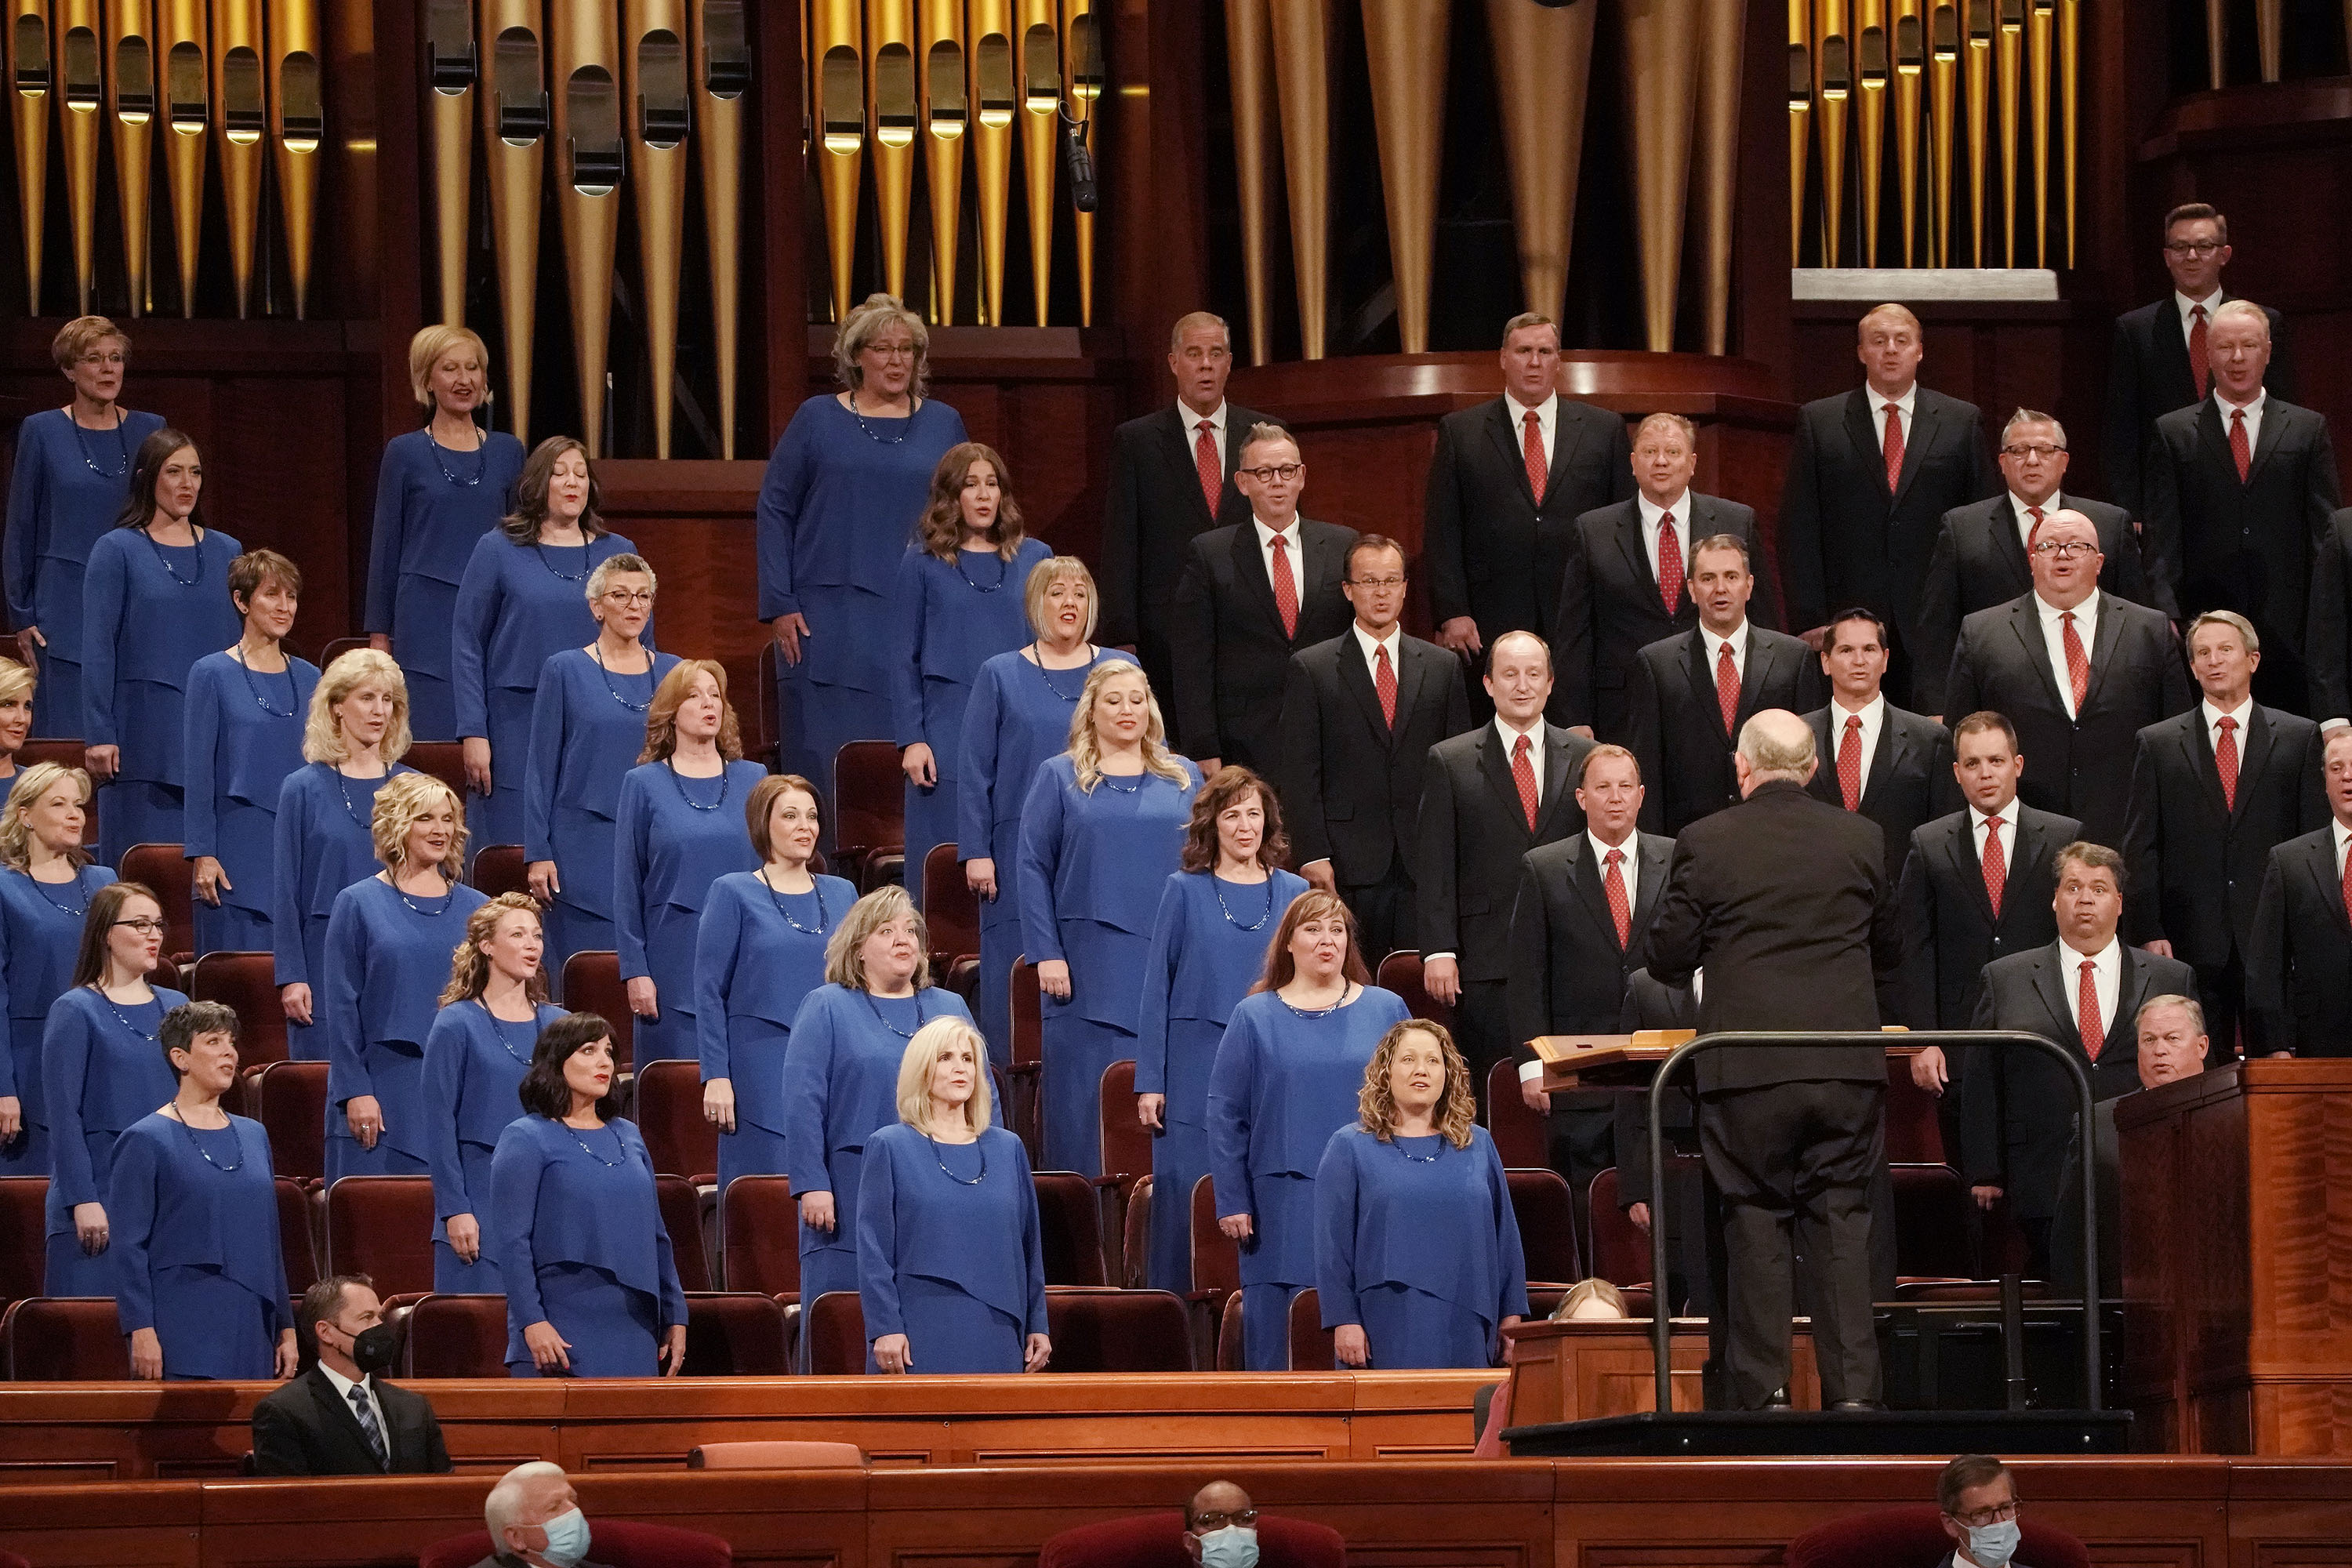 Members of the Tabernacle Choir at Temple Square sing during the 191st General Conference.